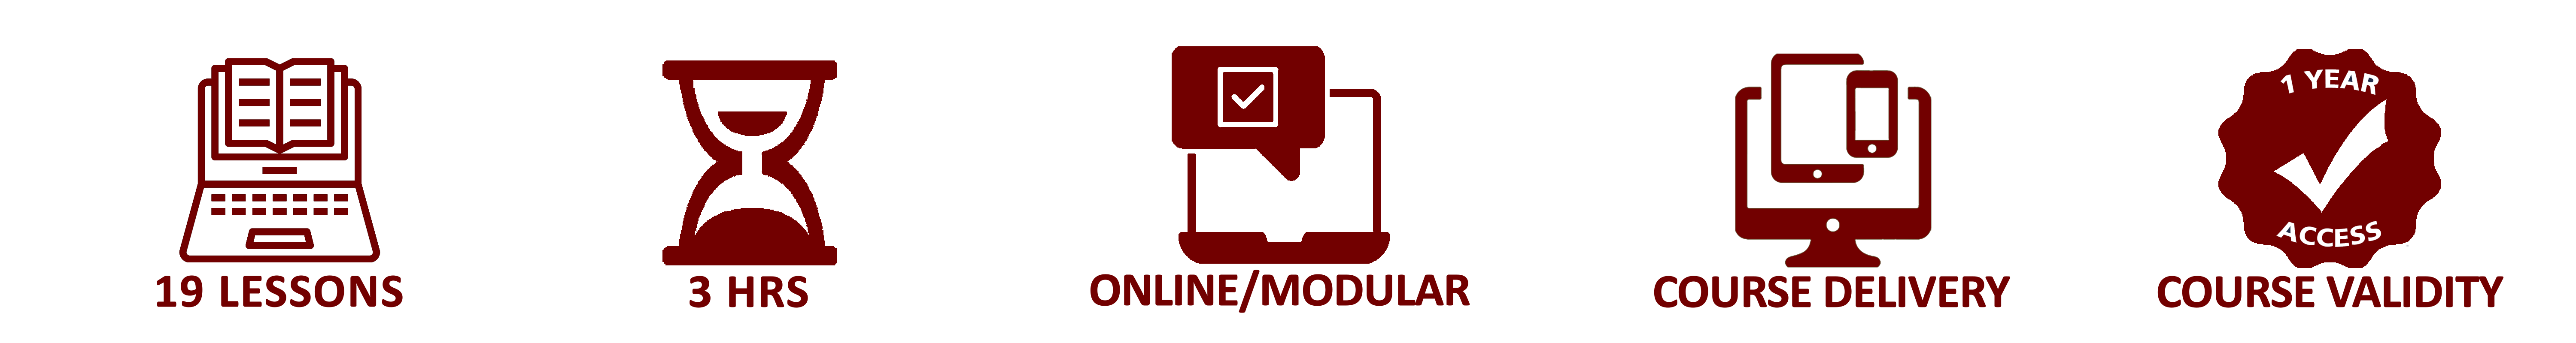 Mastering Adobe Acrobat DC Essentials 2016 - Online Learning Courses - E-Learning Courses - Mandatory Compliance UK-